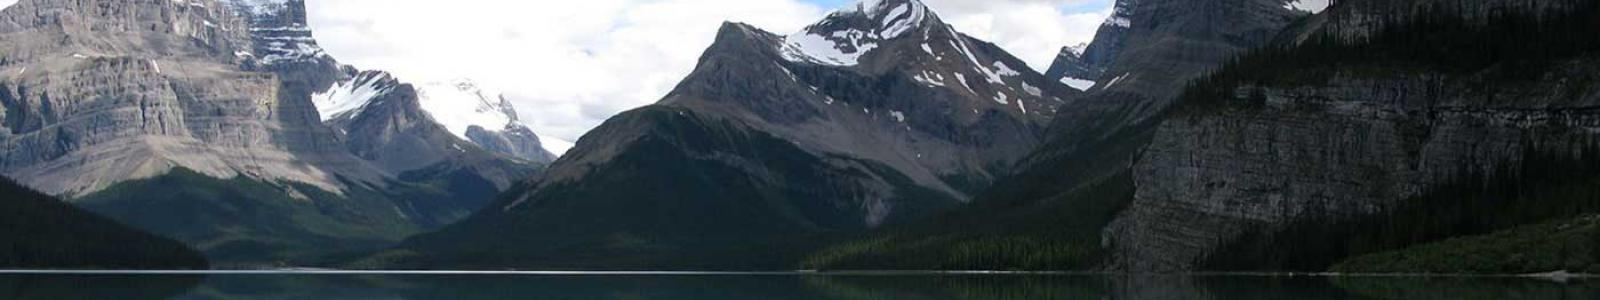 A picture of Maligne Lake